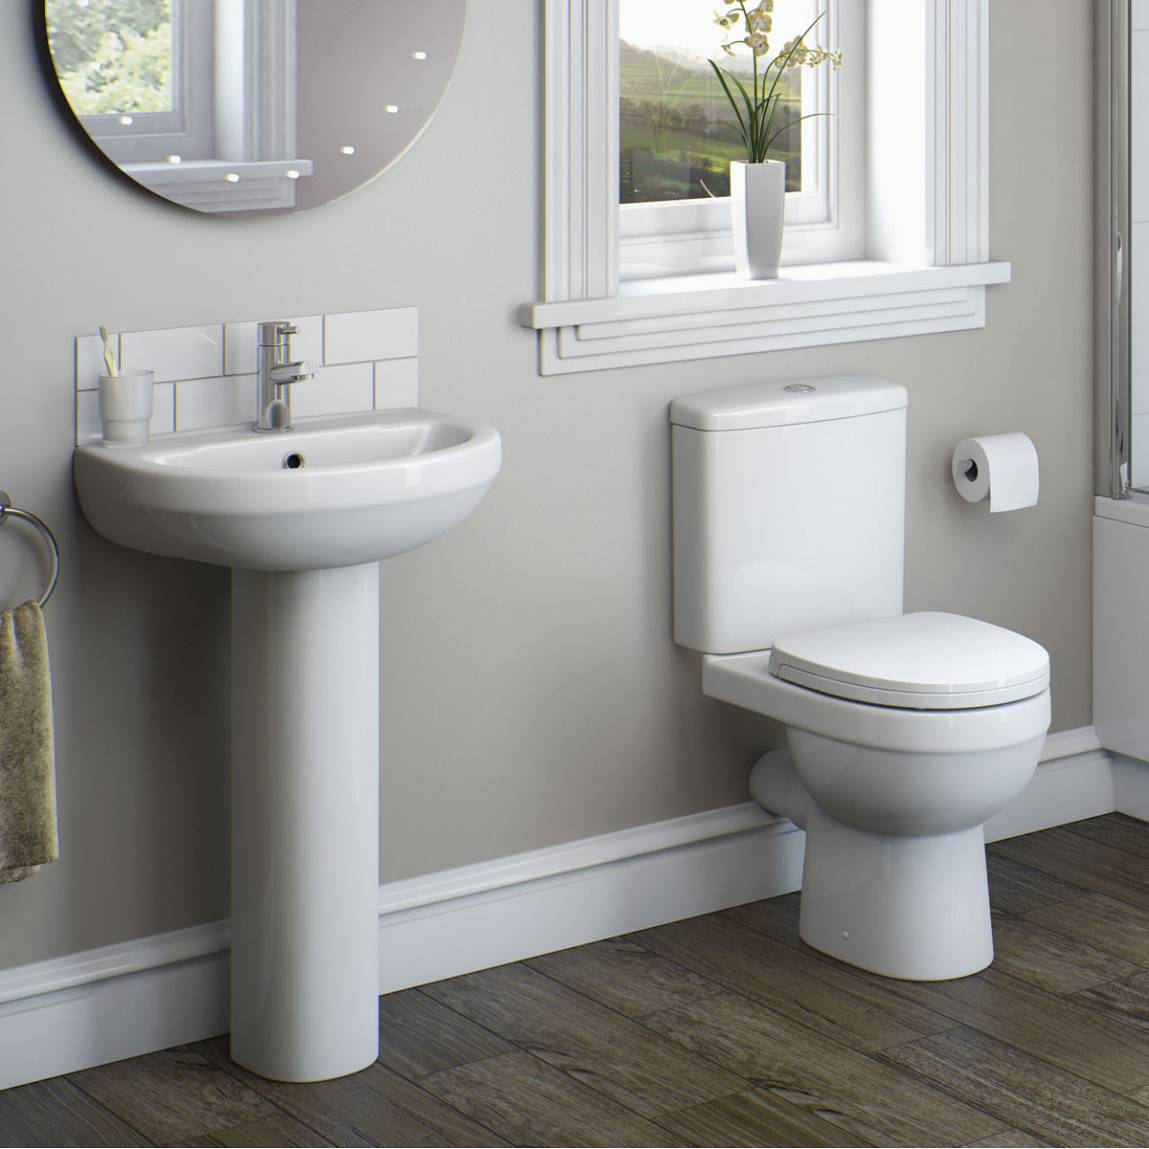 Bathroom products for small spaces - Small bathroom suites for small spaces collection ...